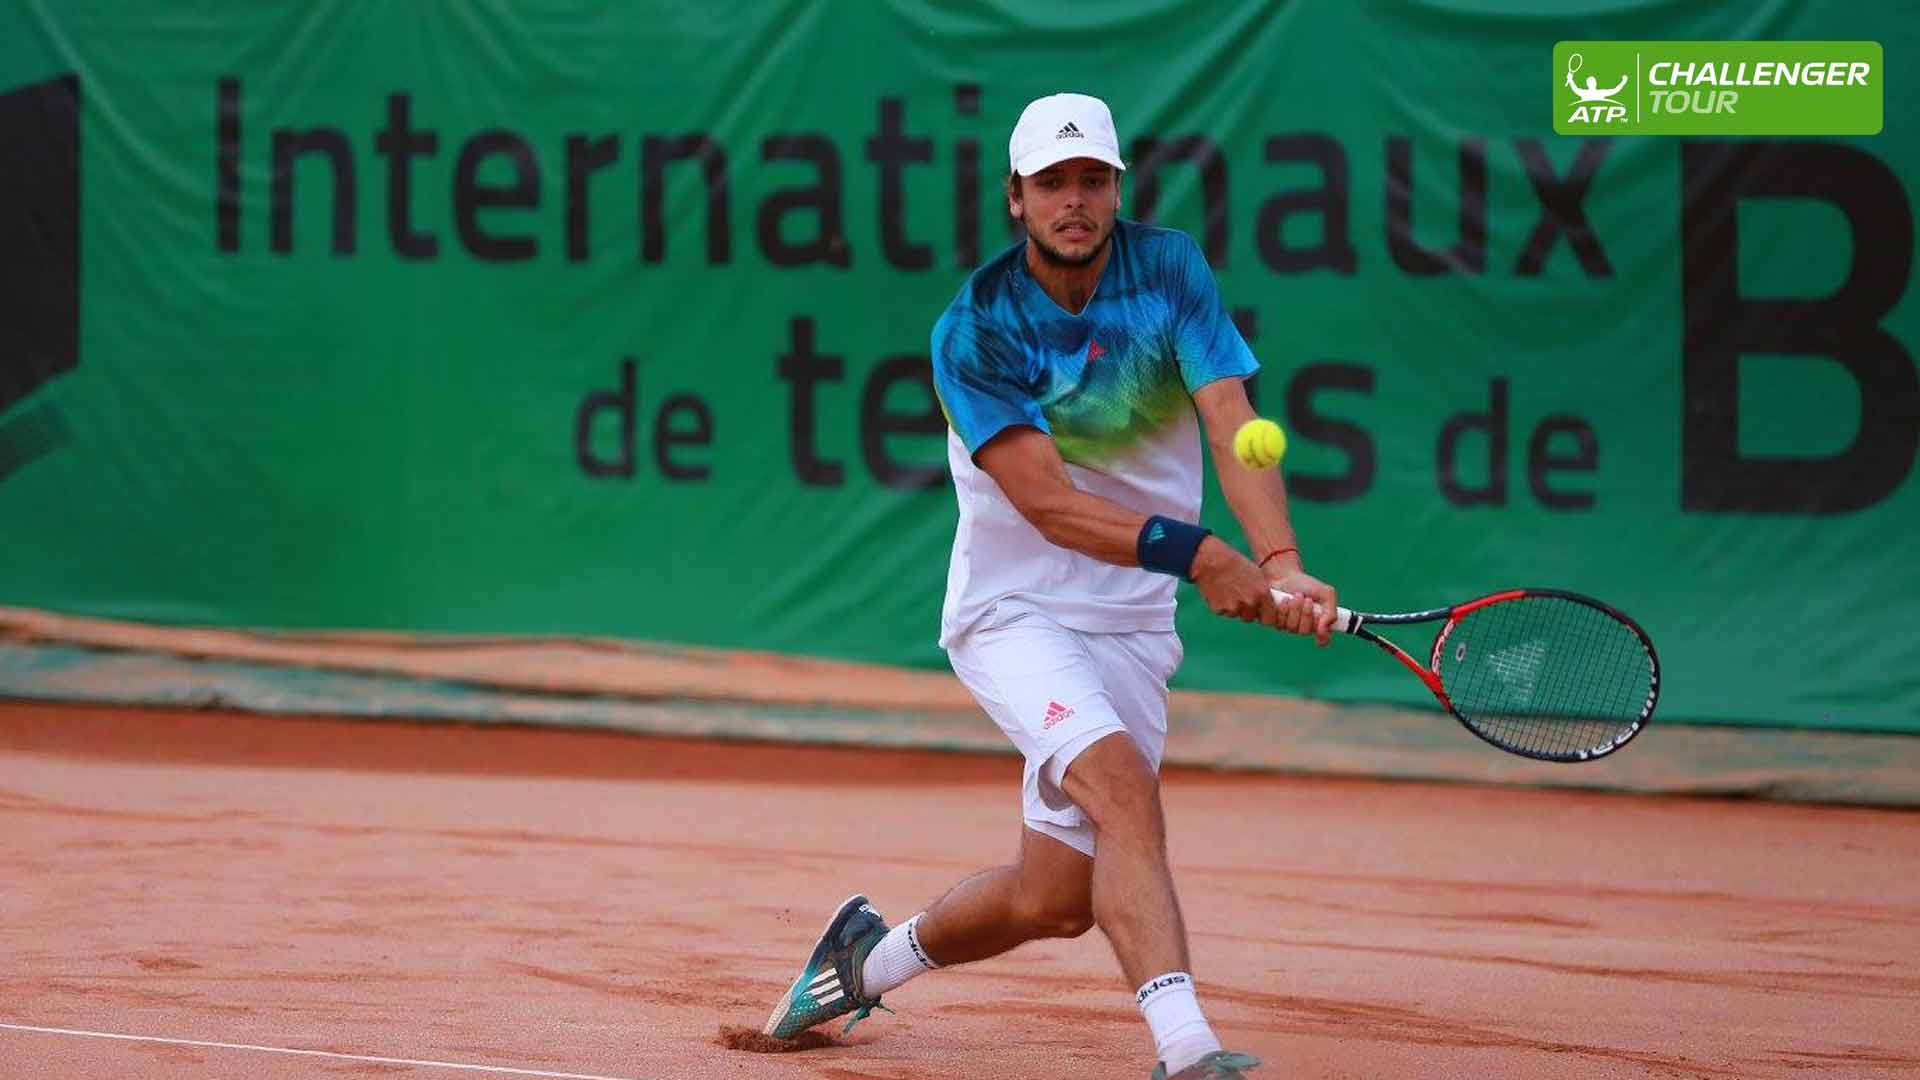 Gregoire Barrere competes this week at the ATP Challenger Tour event in Blois.